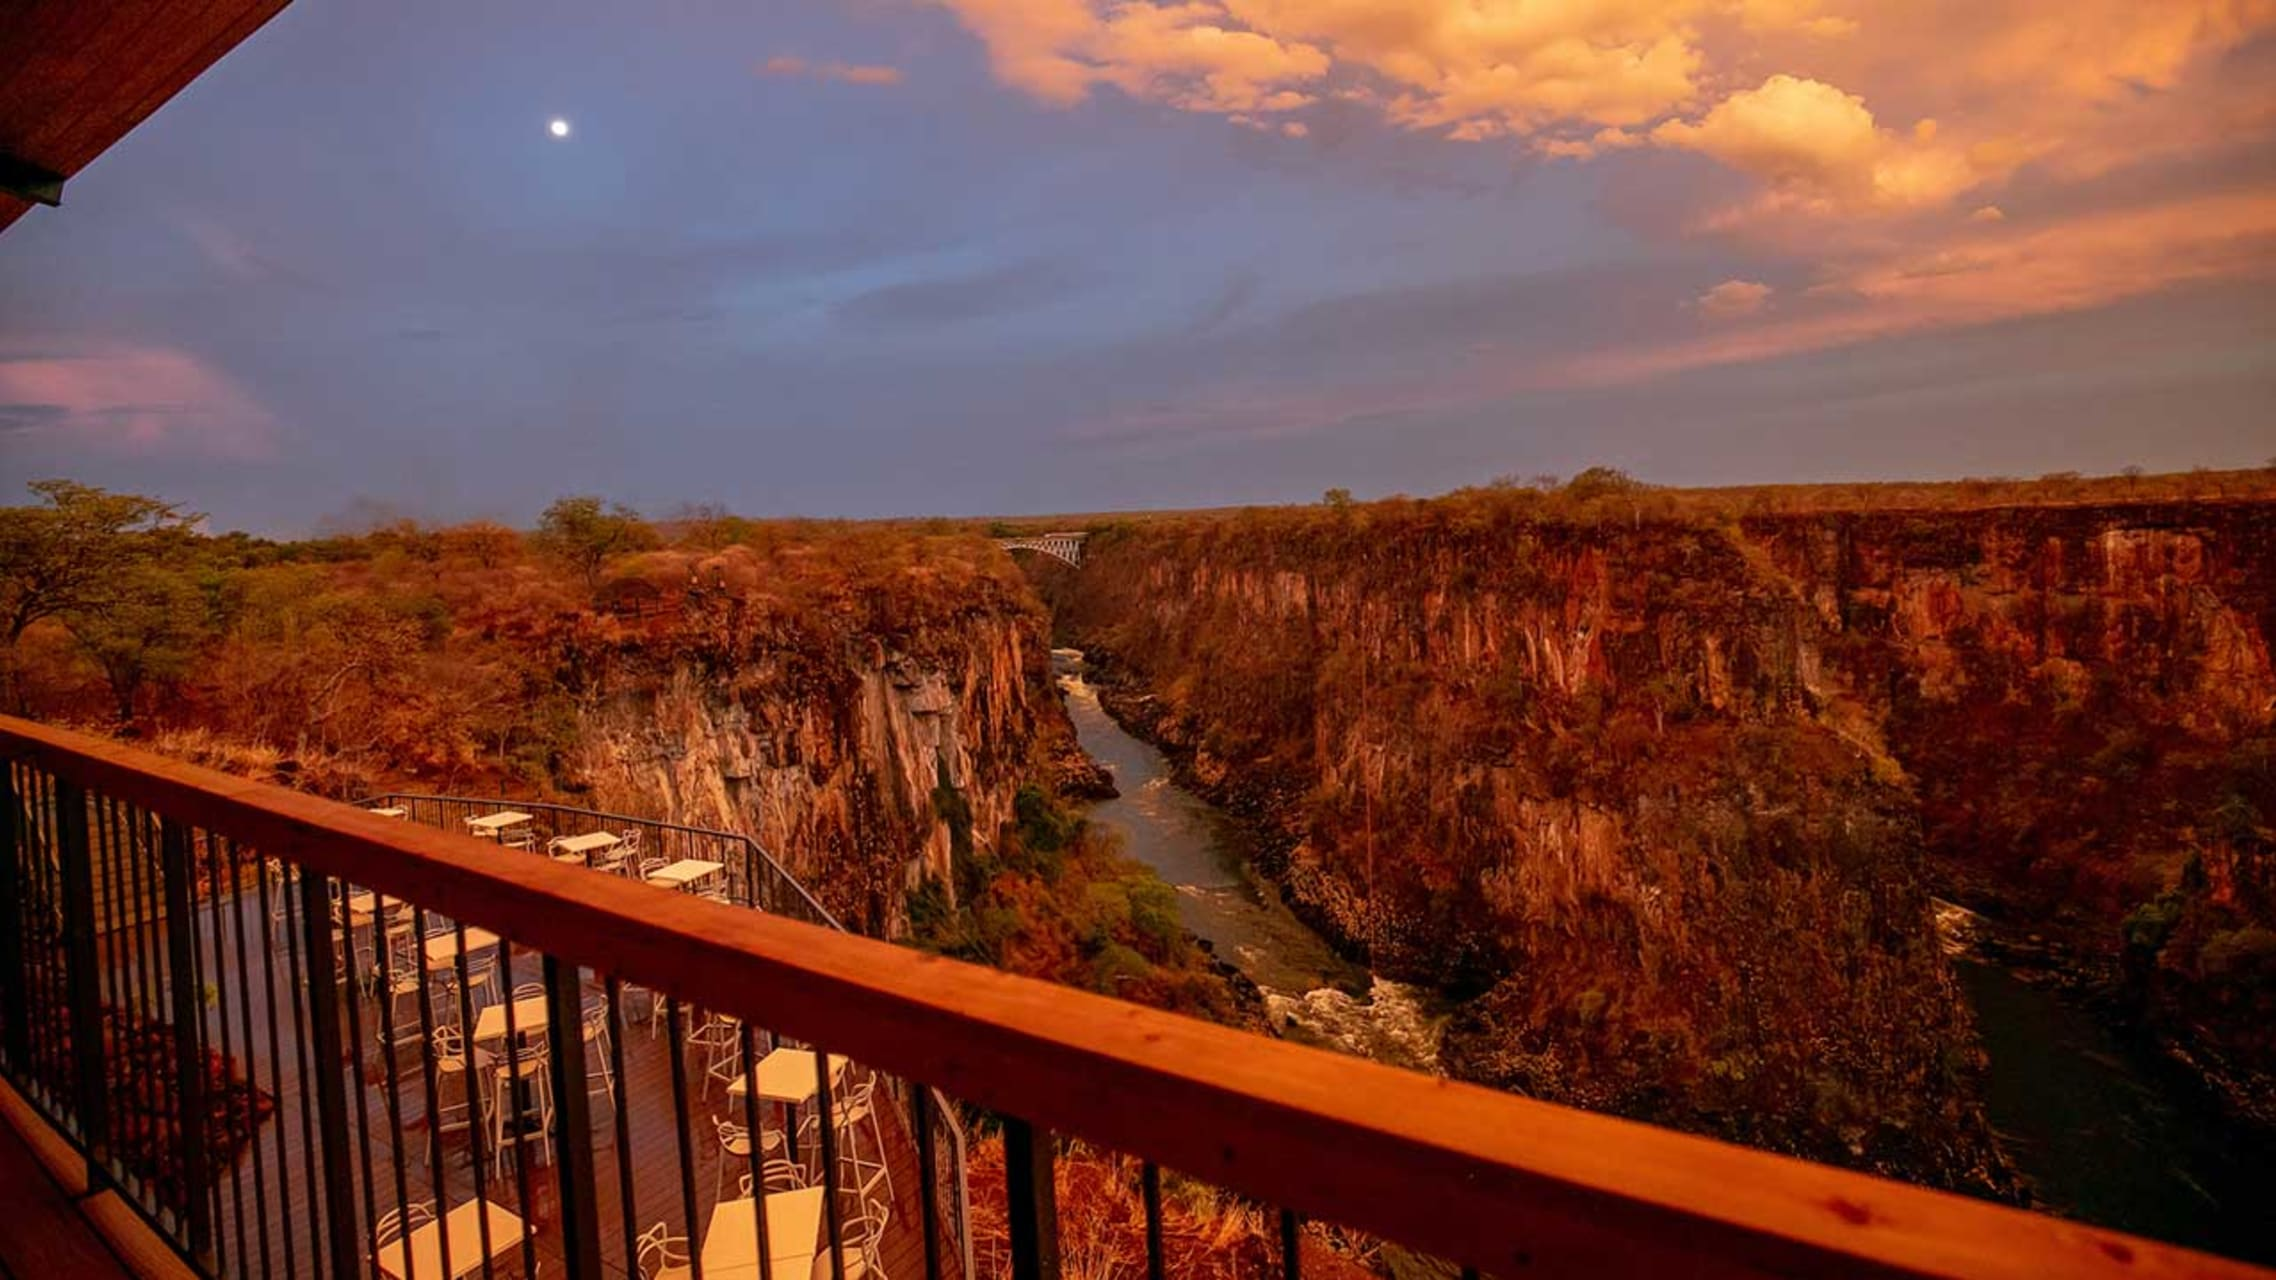 Victoria Falls - Amazing gorge view from the Lookout Cafe